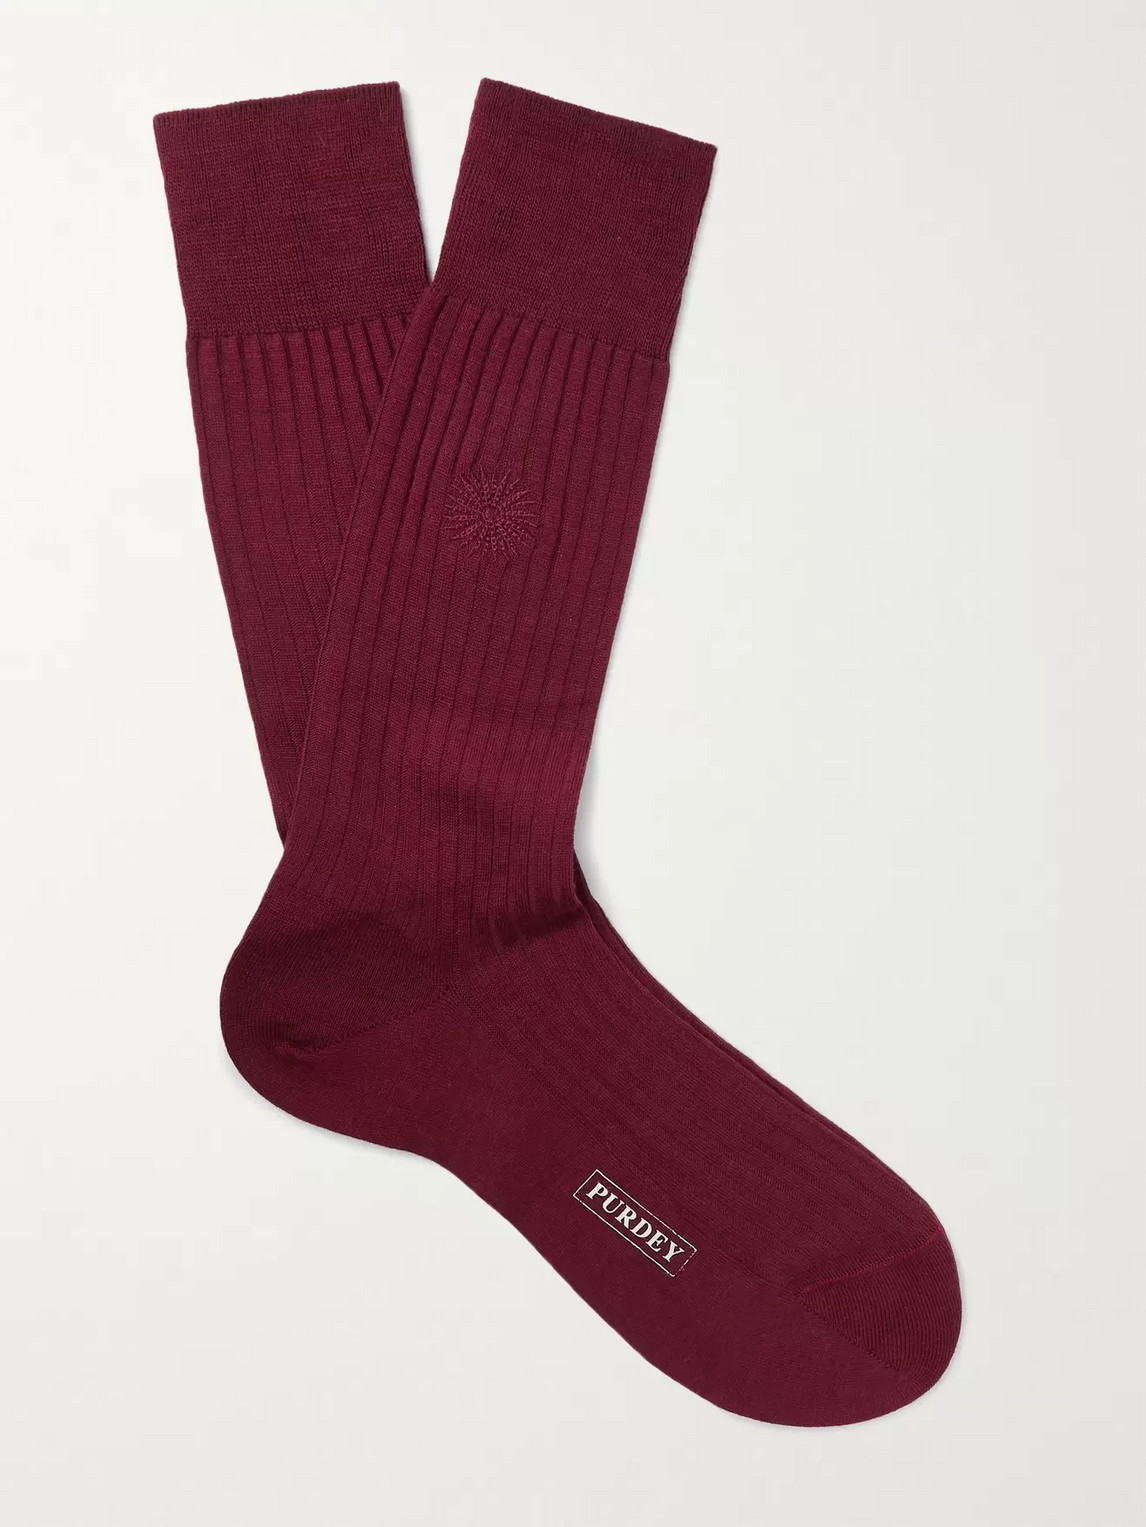 Purdey Featherburst Embroidered Ribbed Merino Wool-blend Socks In Burgundy